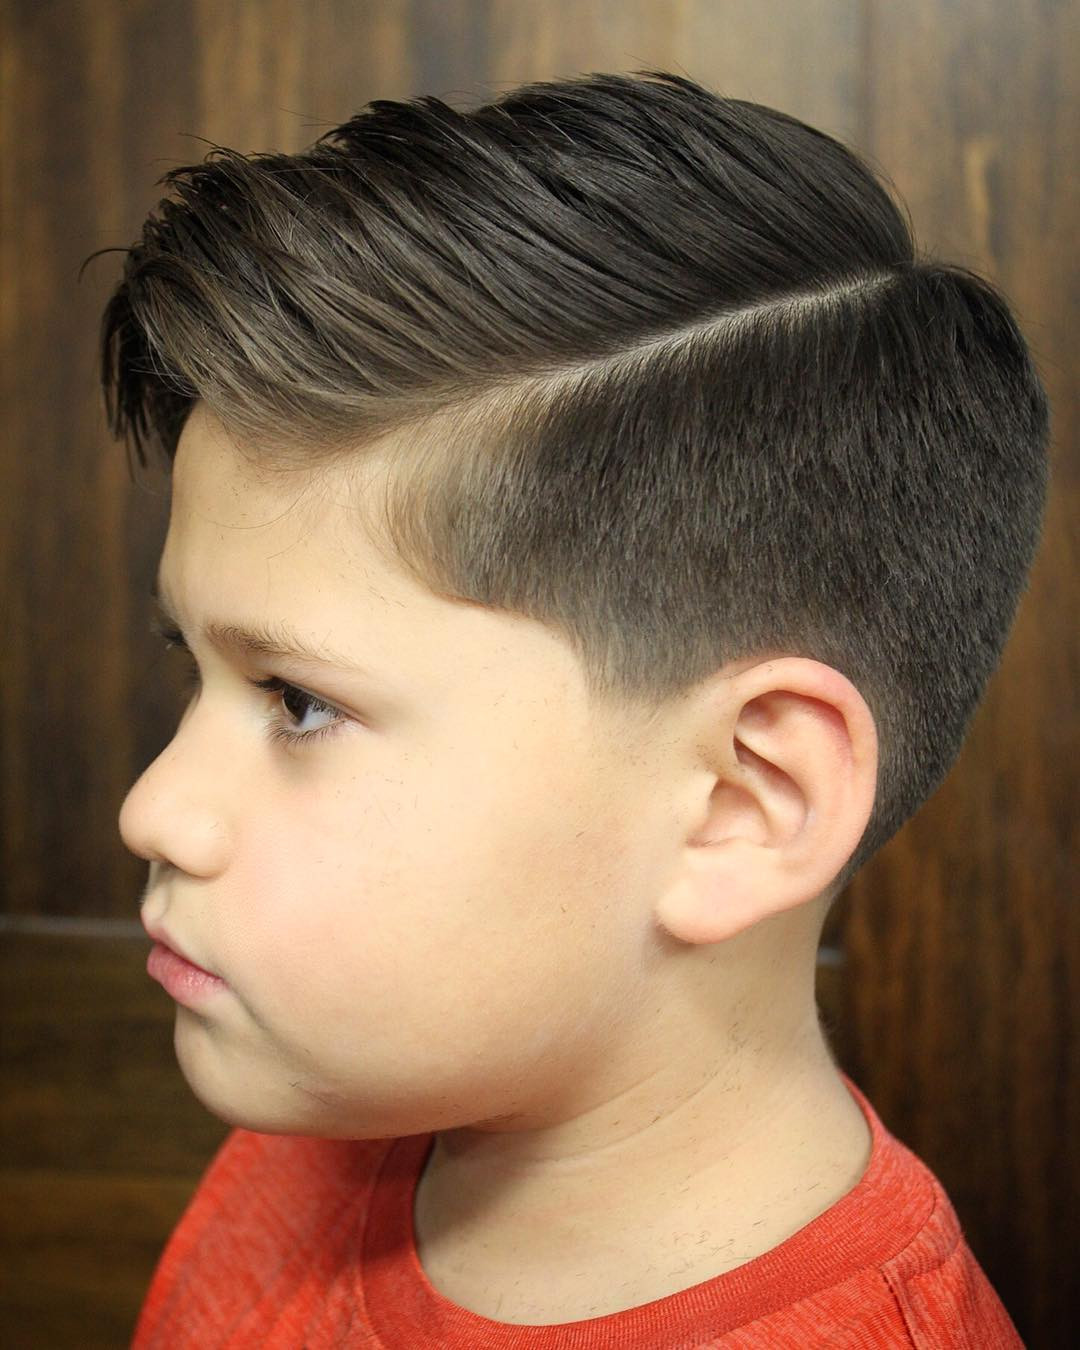 Best ideas about Good Hairstyles For Kids . Save or Pin 50 Cool Haircuts for Kids for 2019 Now.